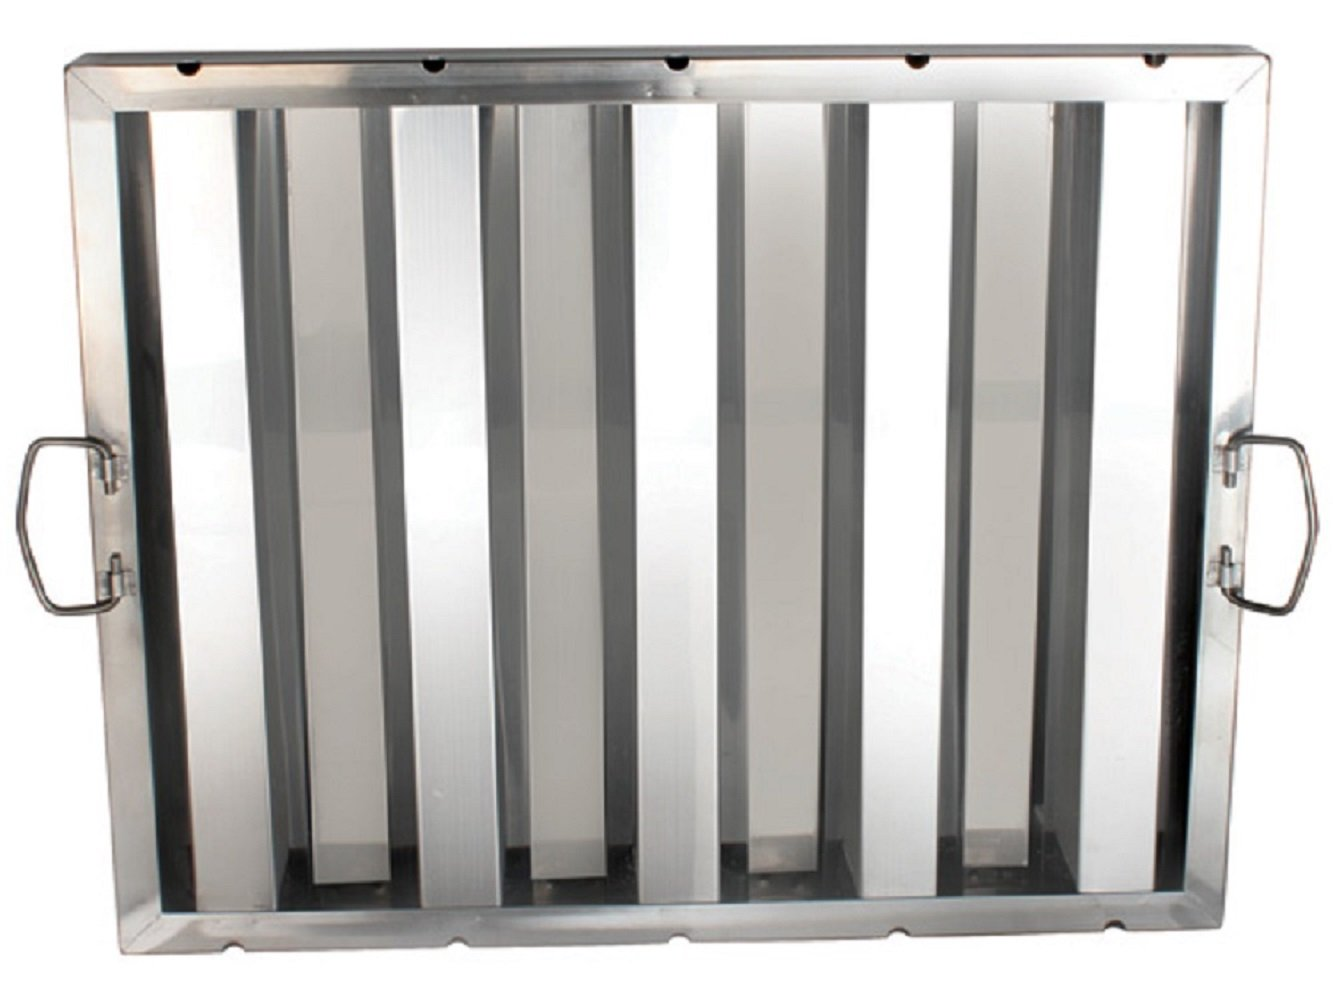 (6) FILTER STAINLESS STEEL HOOD GREASE FILTERS DIFFERENT SIZES RESTAURANT 6 PACK (20'' X 20'')